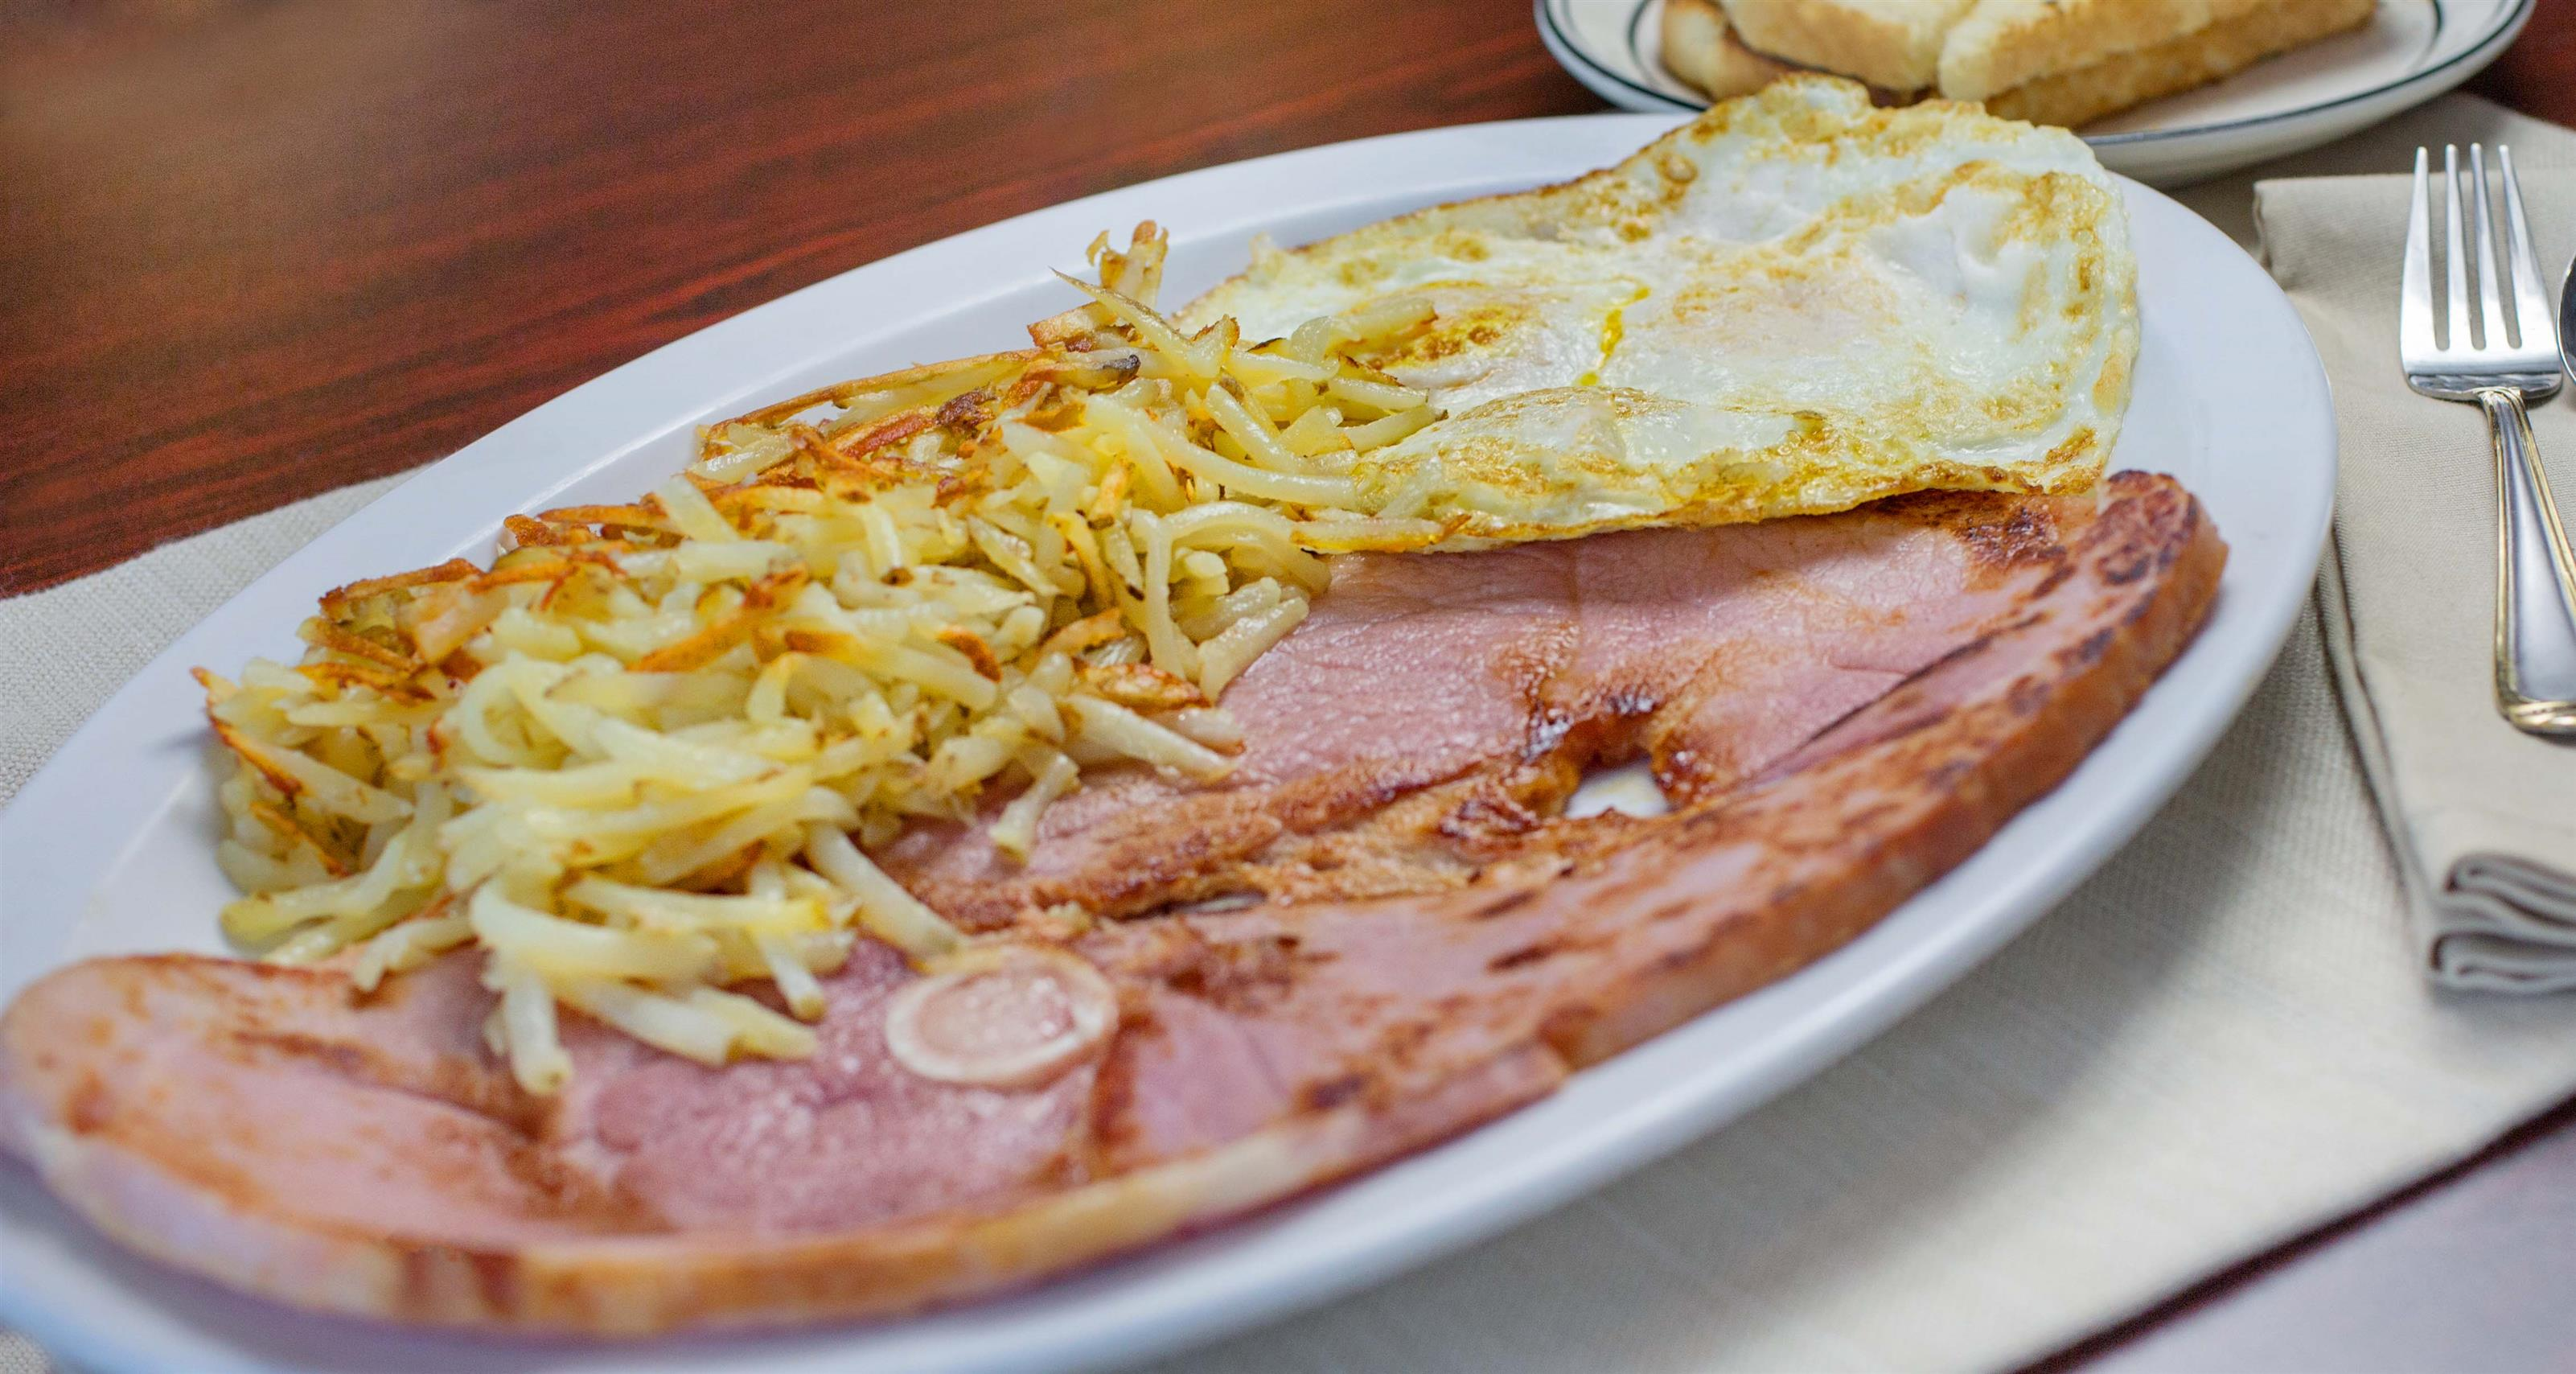 baked ham with hashbrowns